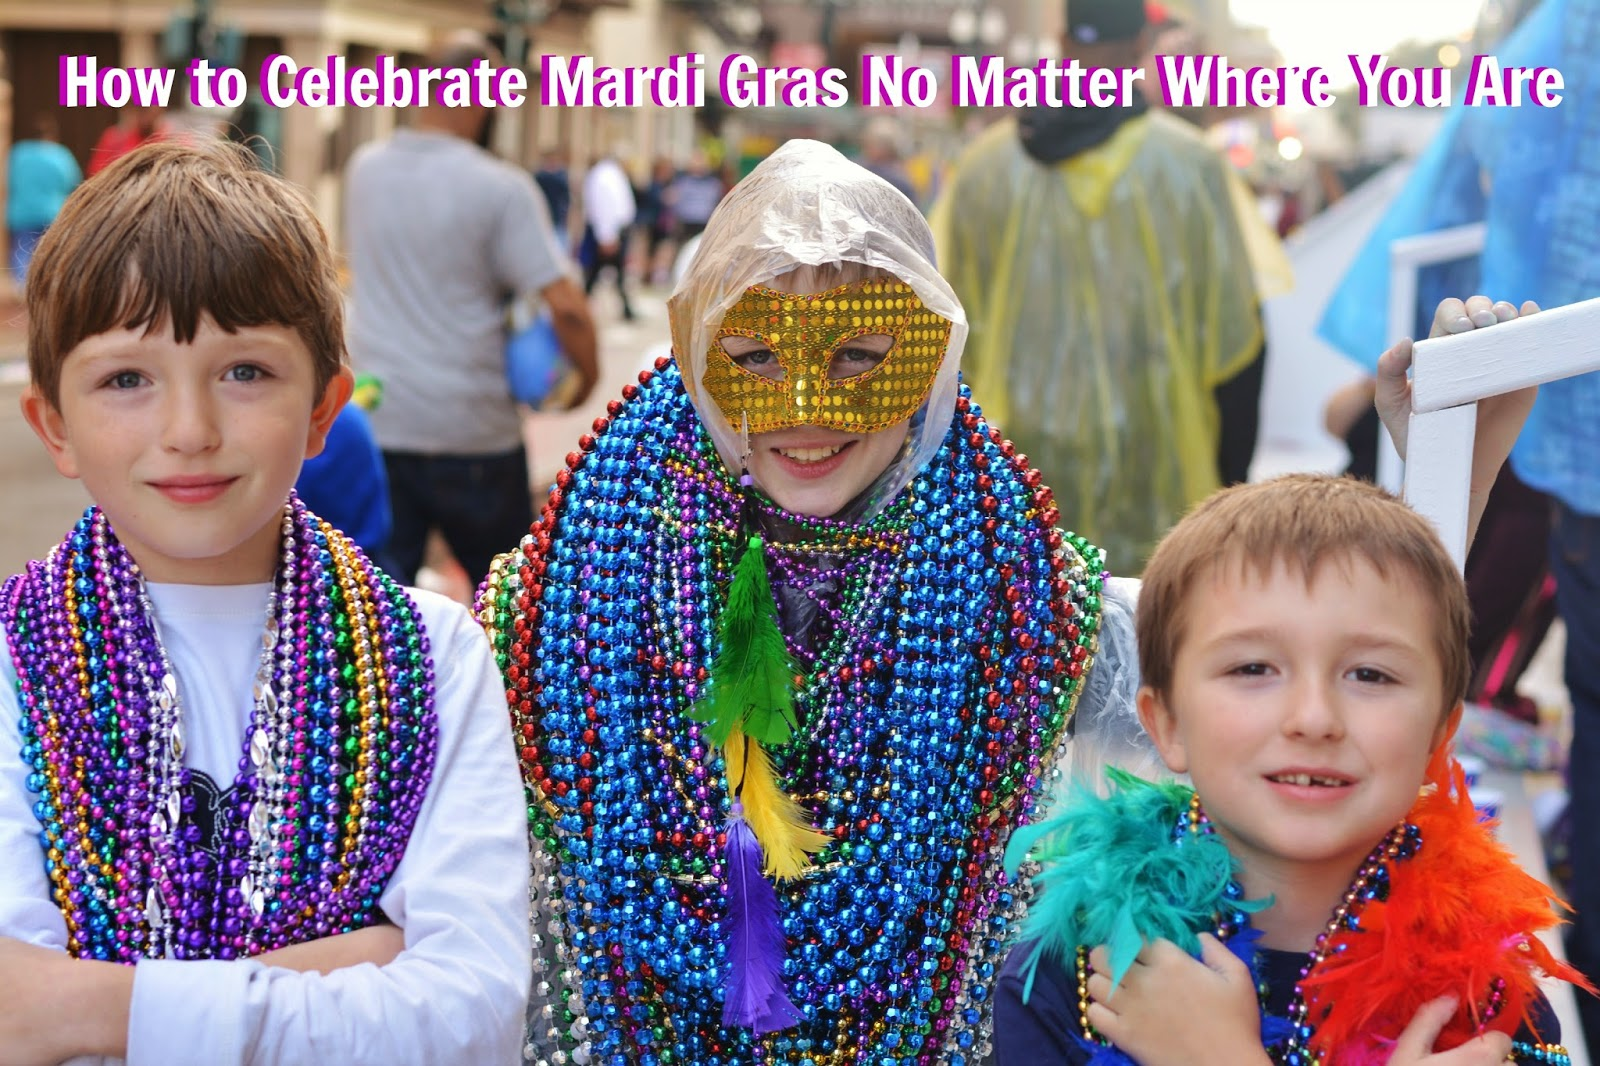 Great tips for celebrating Mardi Gras no matter where you are. #MardiGras #DIY